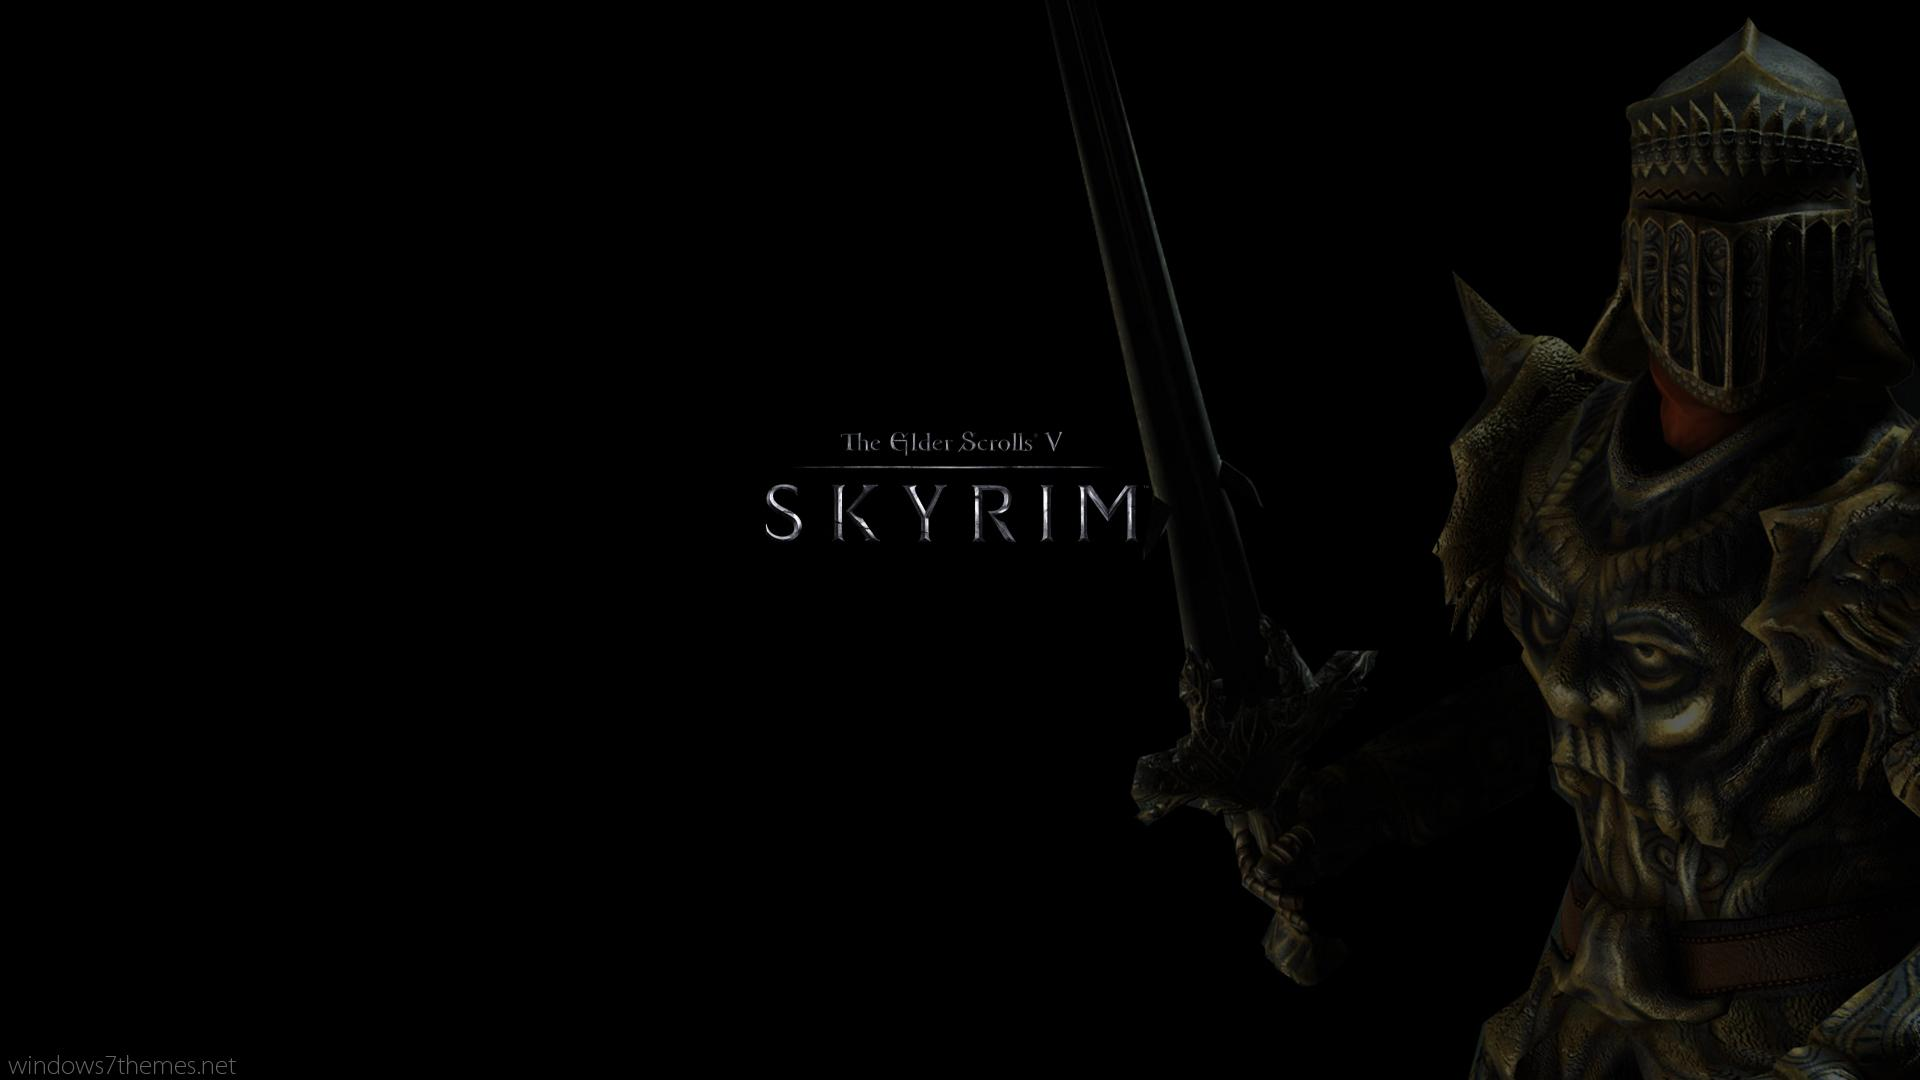 Wallpaper The Elder Scrolls V: Skyrim Black